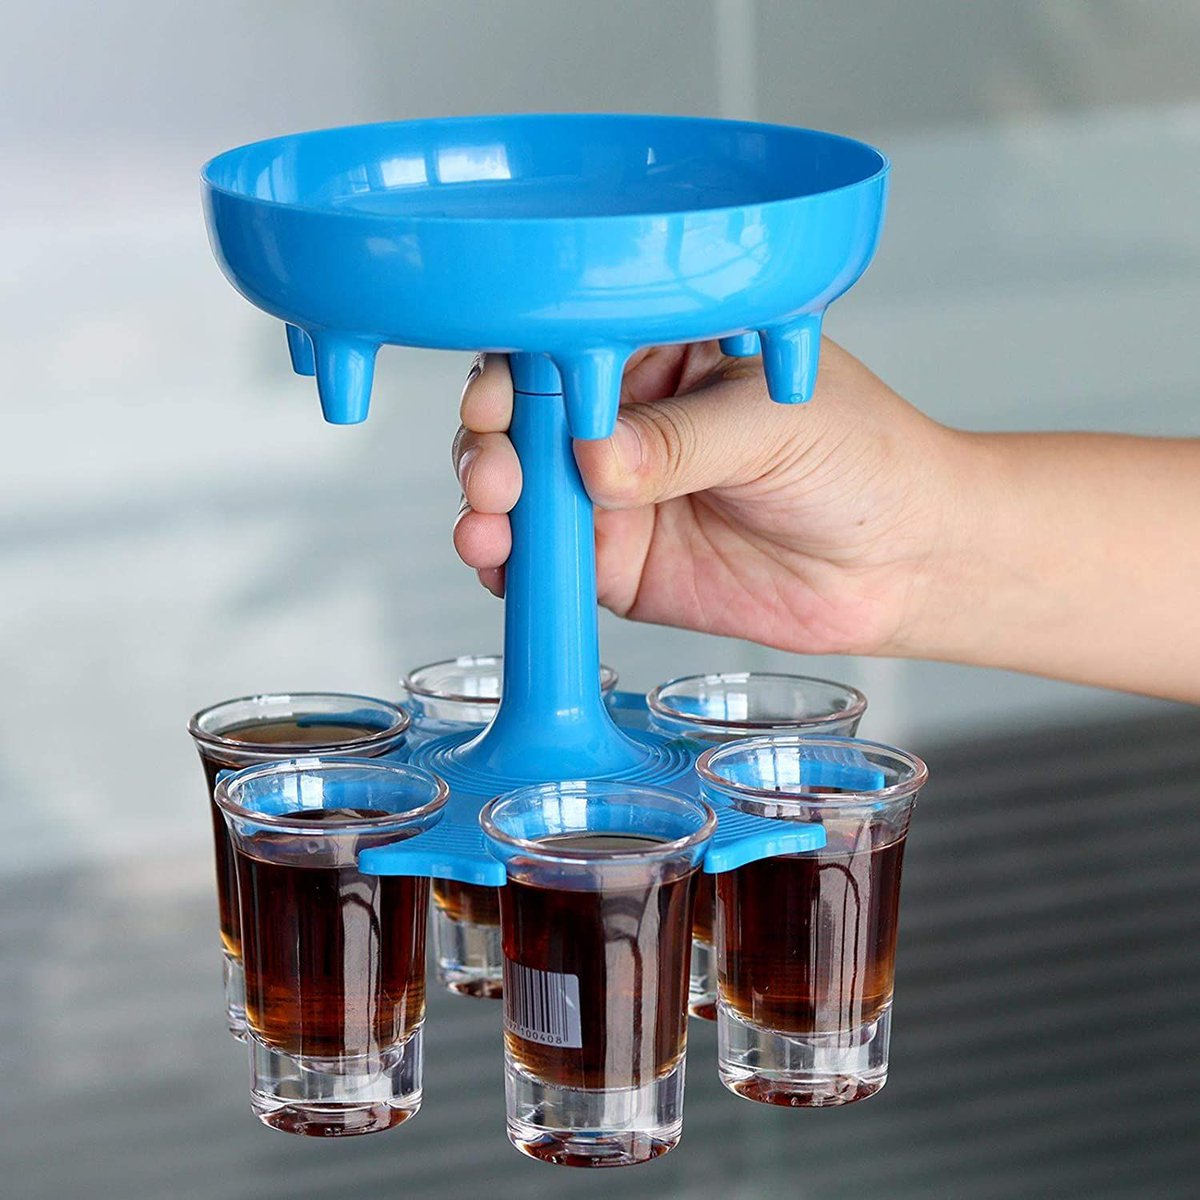 ad: 6 Shot Glass Dispenser and Holder  ONLY $7.99  Link0 Link0